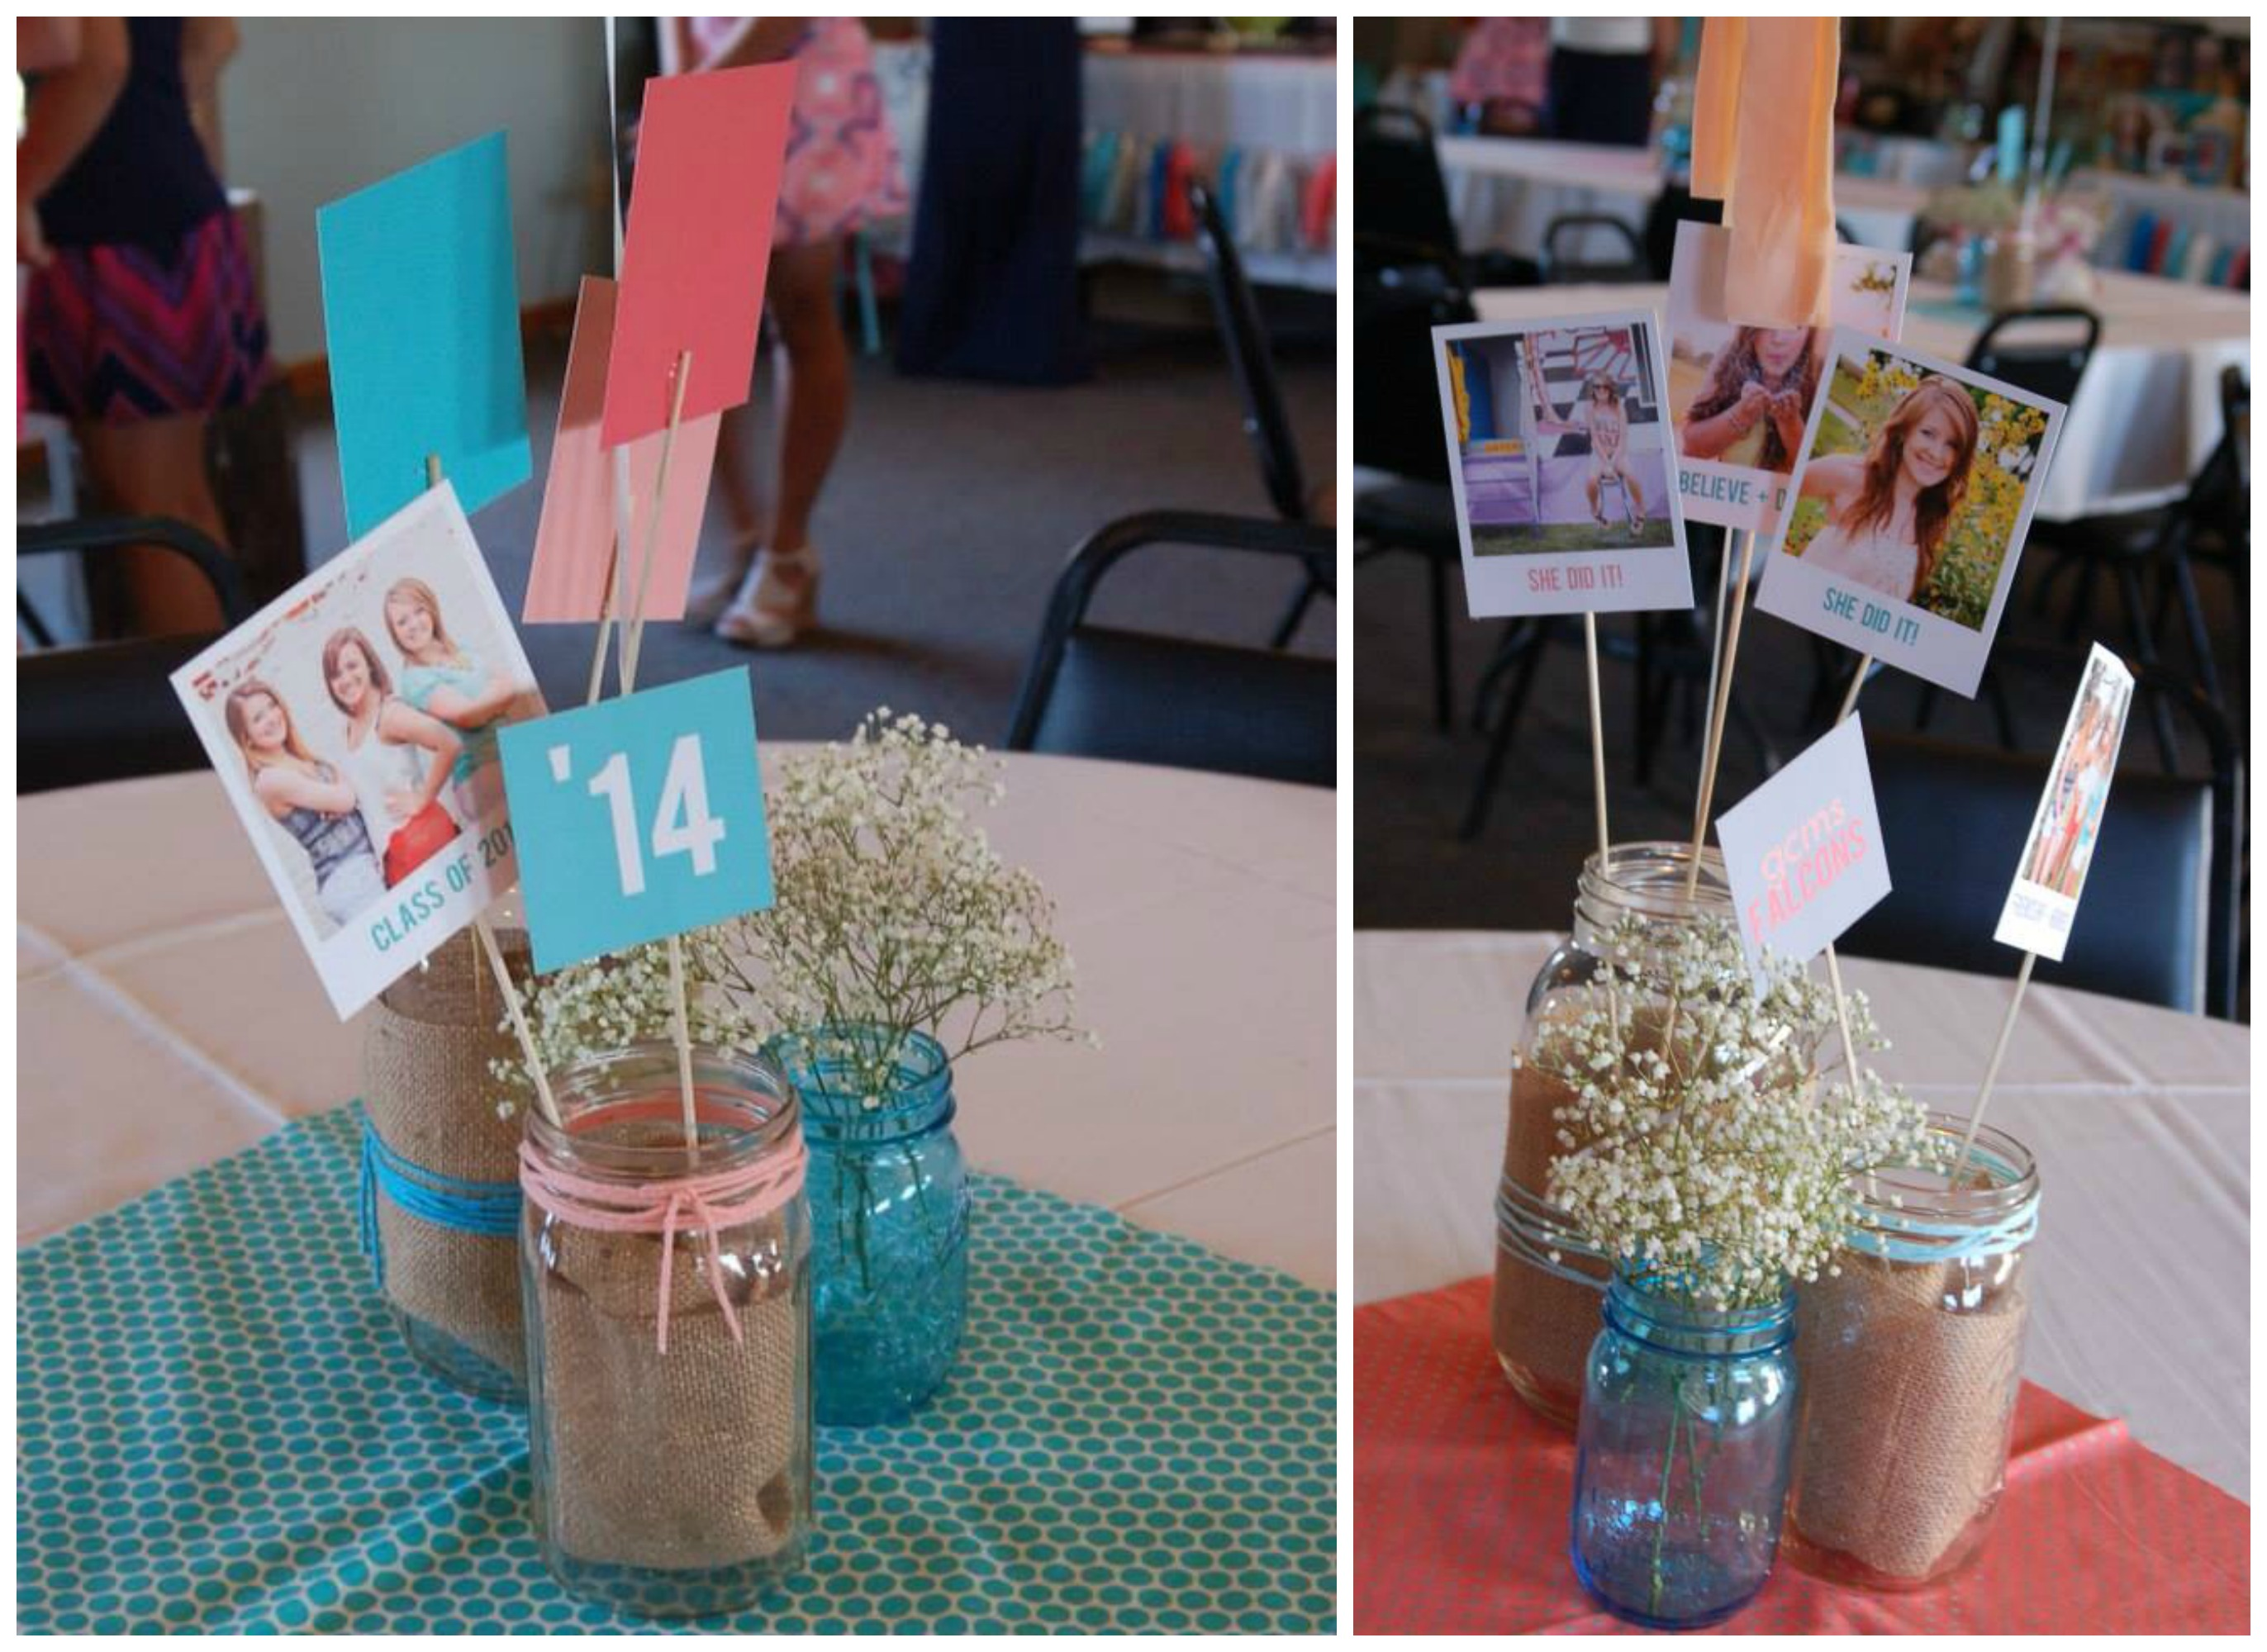 Graduation party ideas from a recent featured favorite